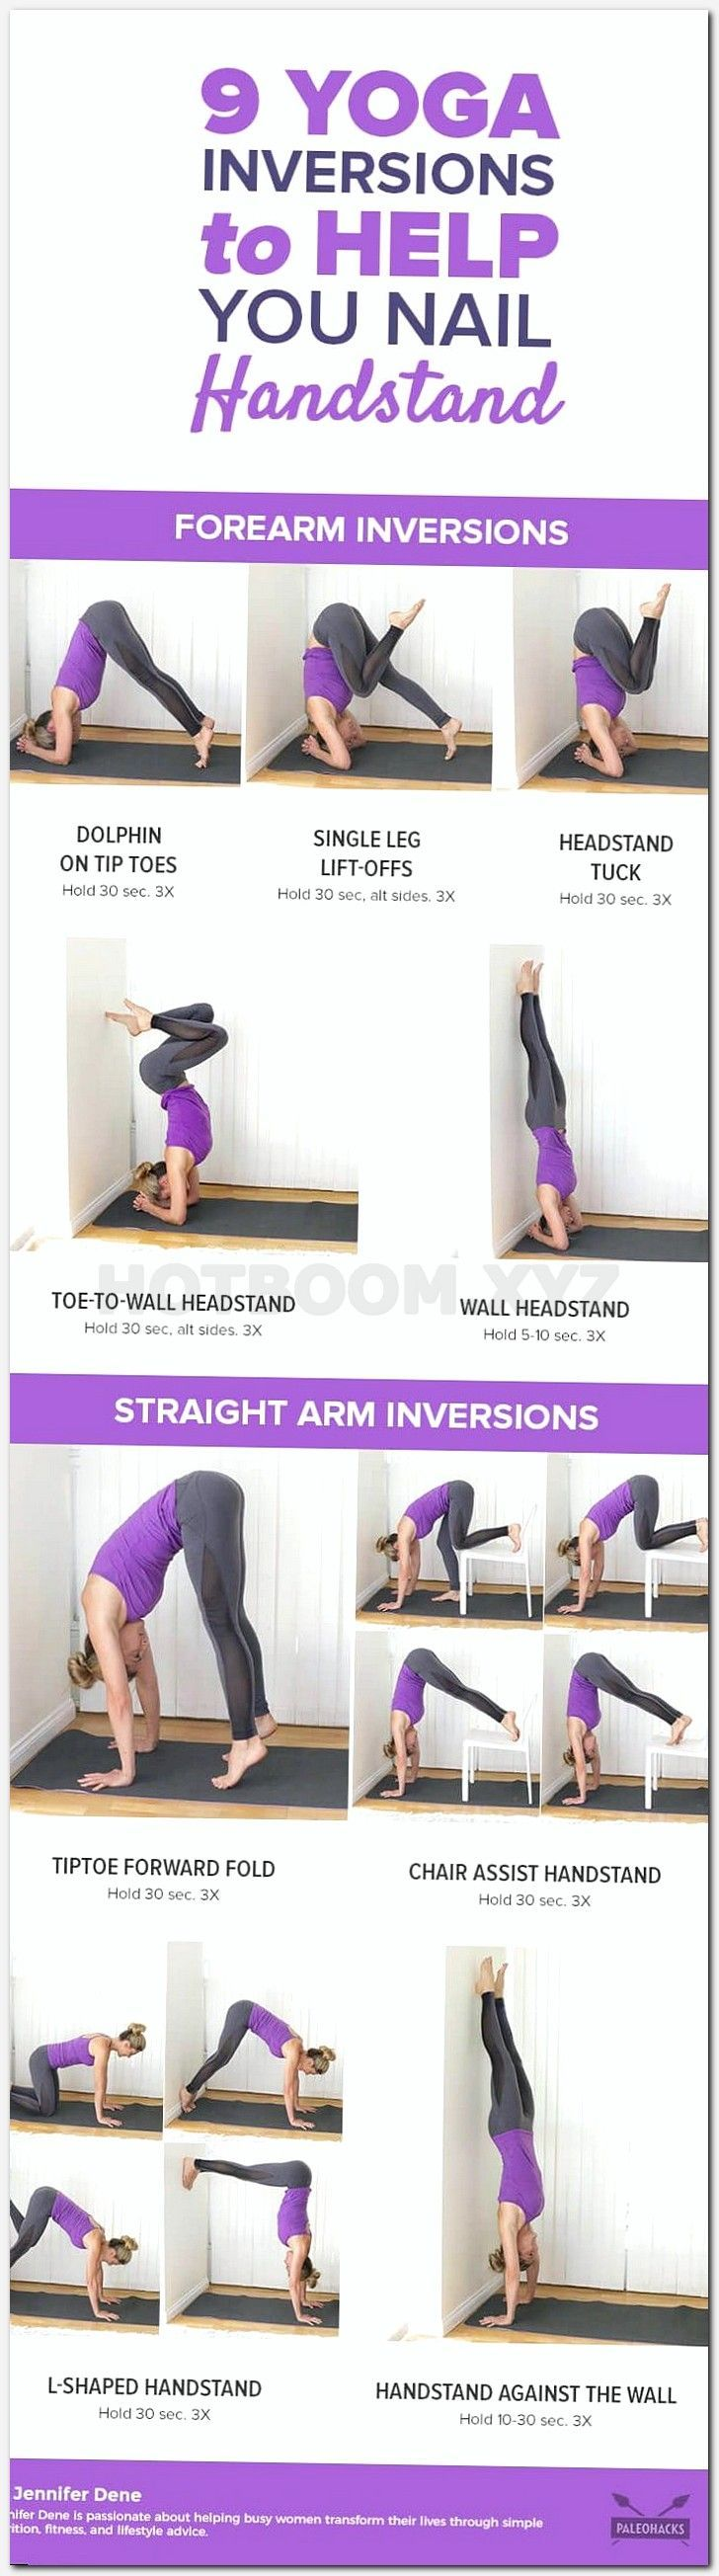 yoga in the morning for weight loss, yoga asanas names and benefits, acupressure points to increase metabolism, yogaonline, yoga los angeles, my weight loss, how to get better metabolism, effective weight loss tips at home, 30 day yoga challenge weight lo